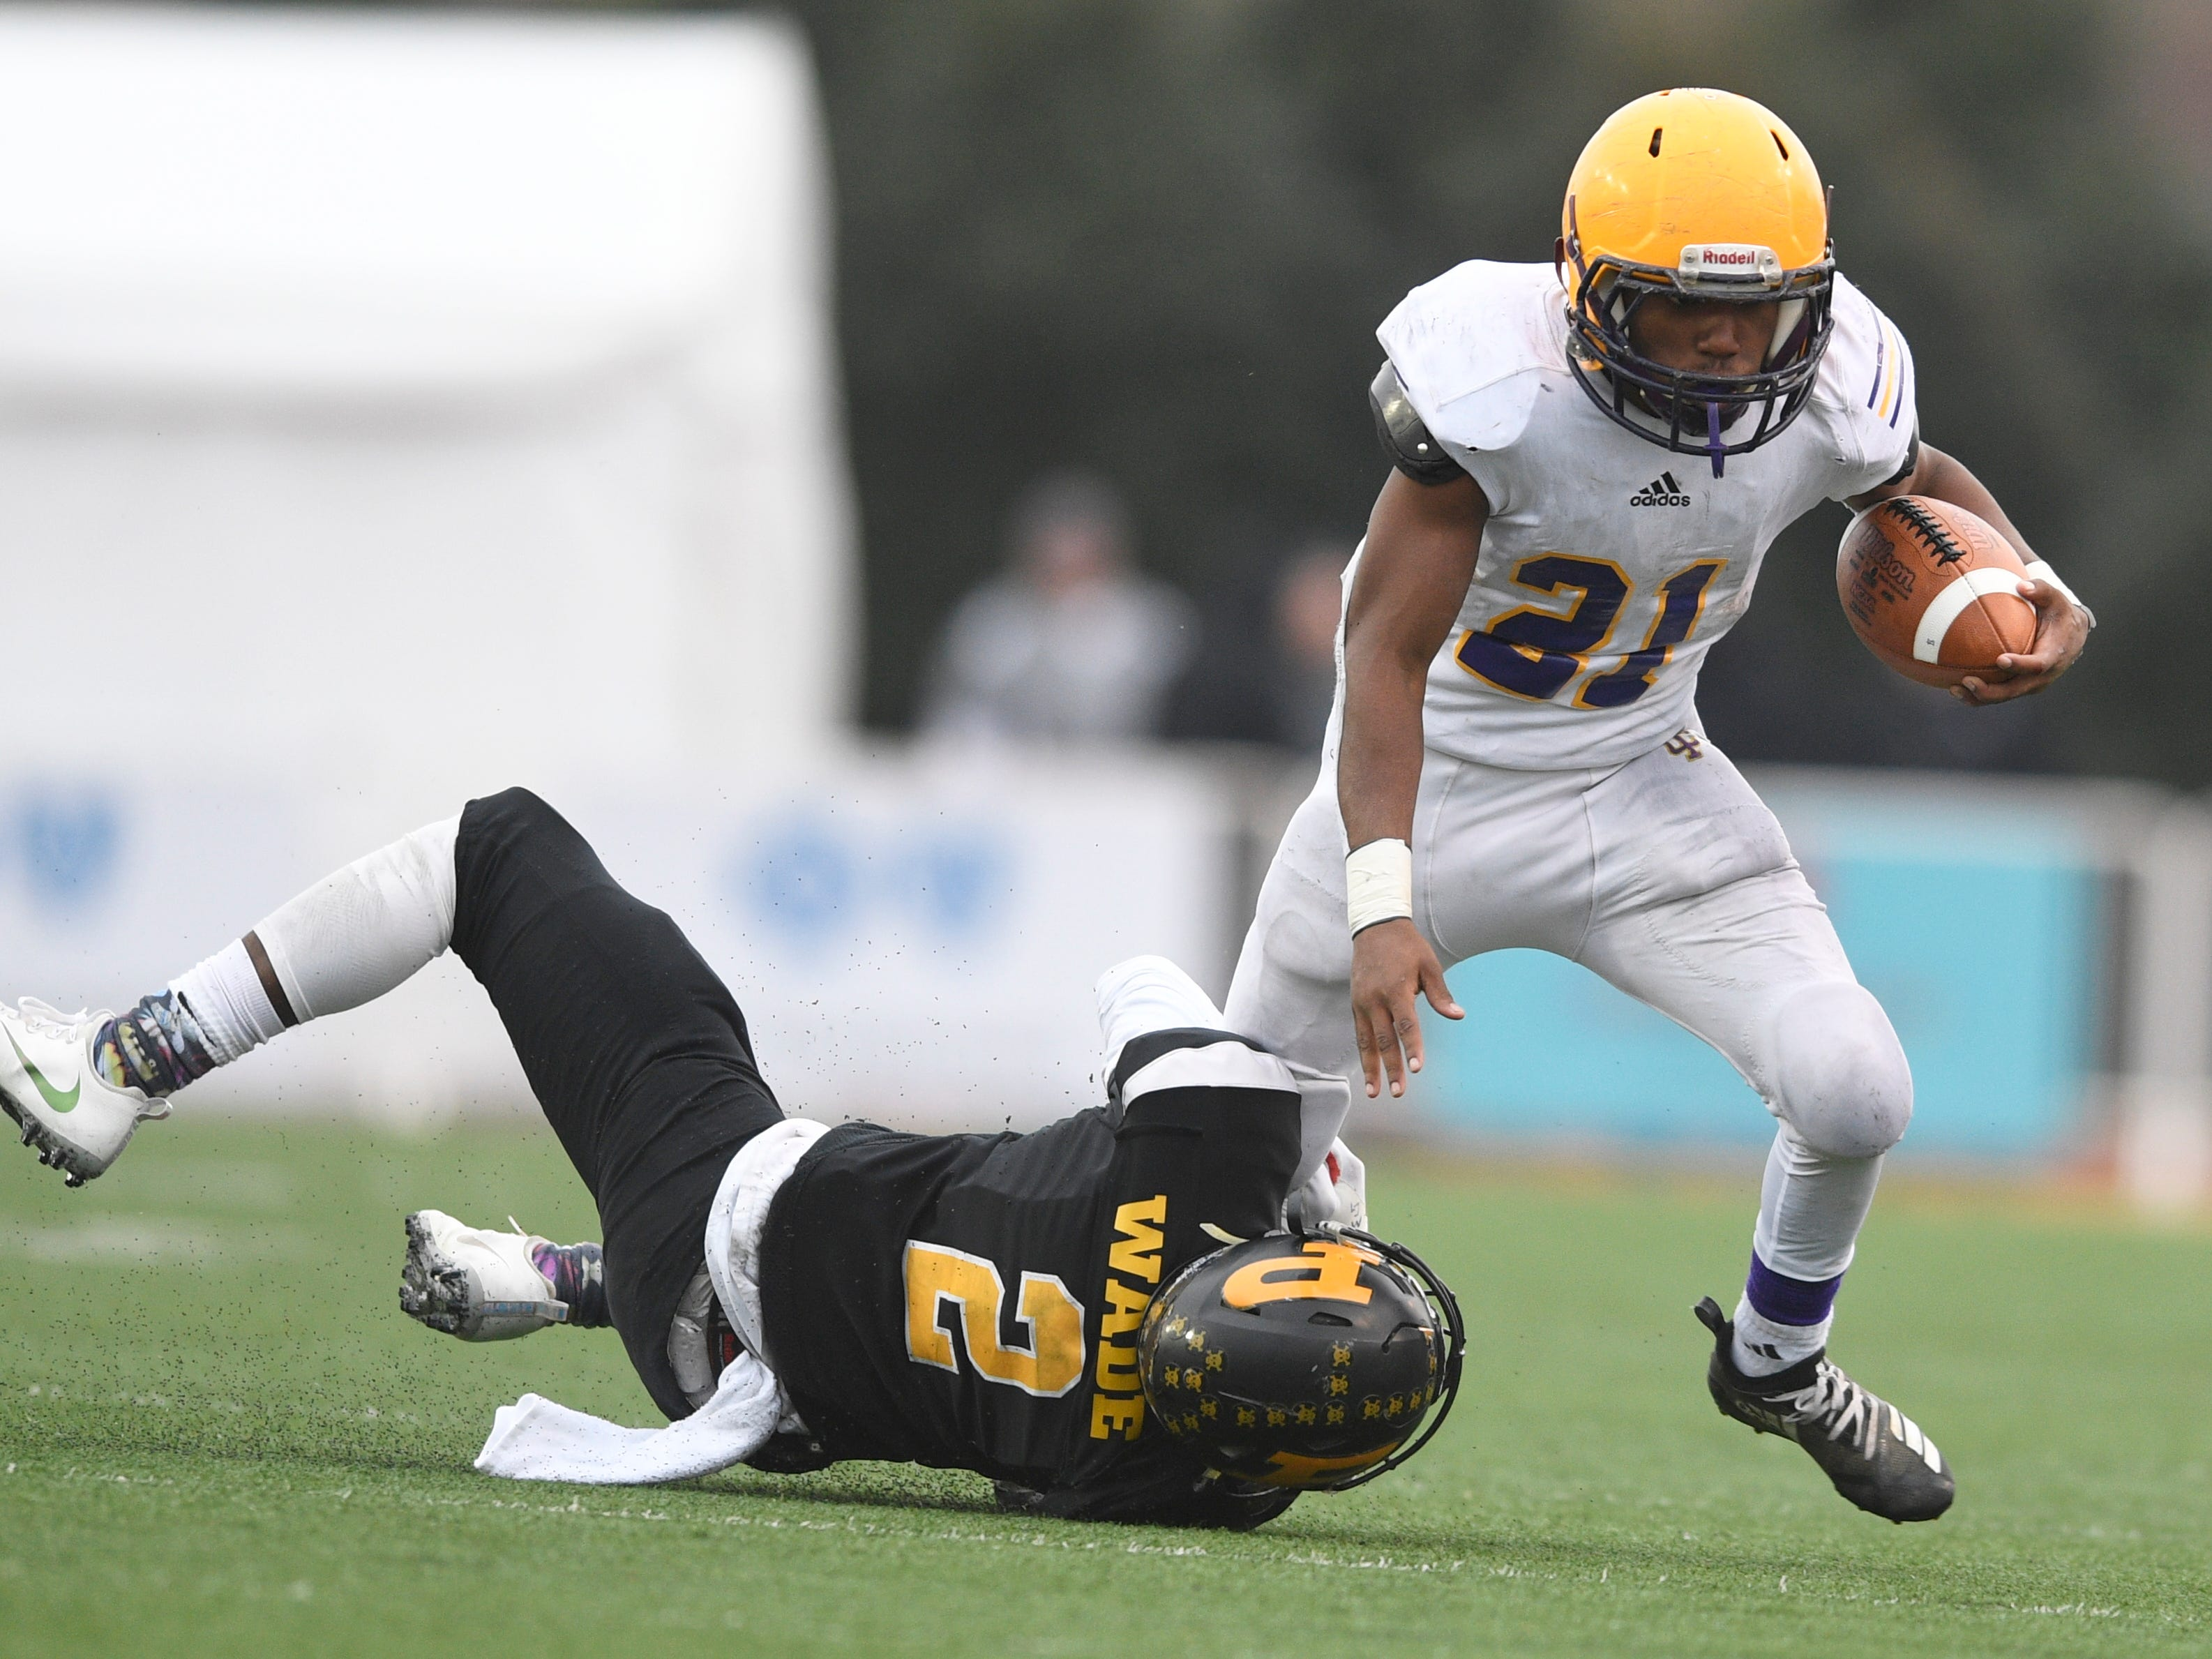 Peabody's Courtlen Wade (2) stops Trousdale's Dyson Satterfield (21) in the third quarter during the Class 2A BlueCross Bowl state championship at Tennessee Tech's Tucker Stadium in Cookeville, Tenn., on Thursday, Nov. 29, 2018.